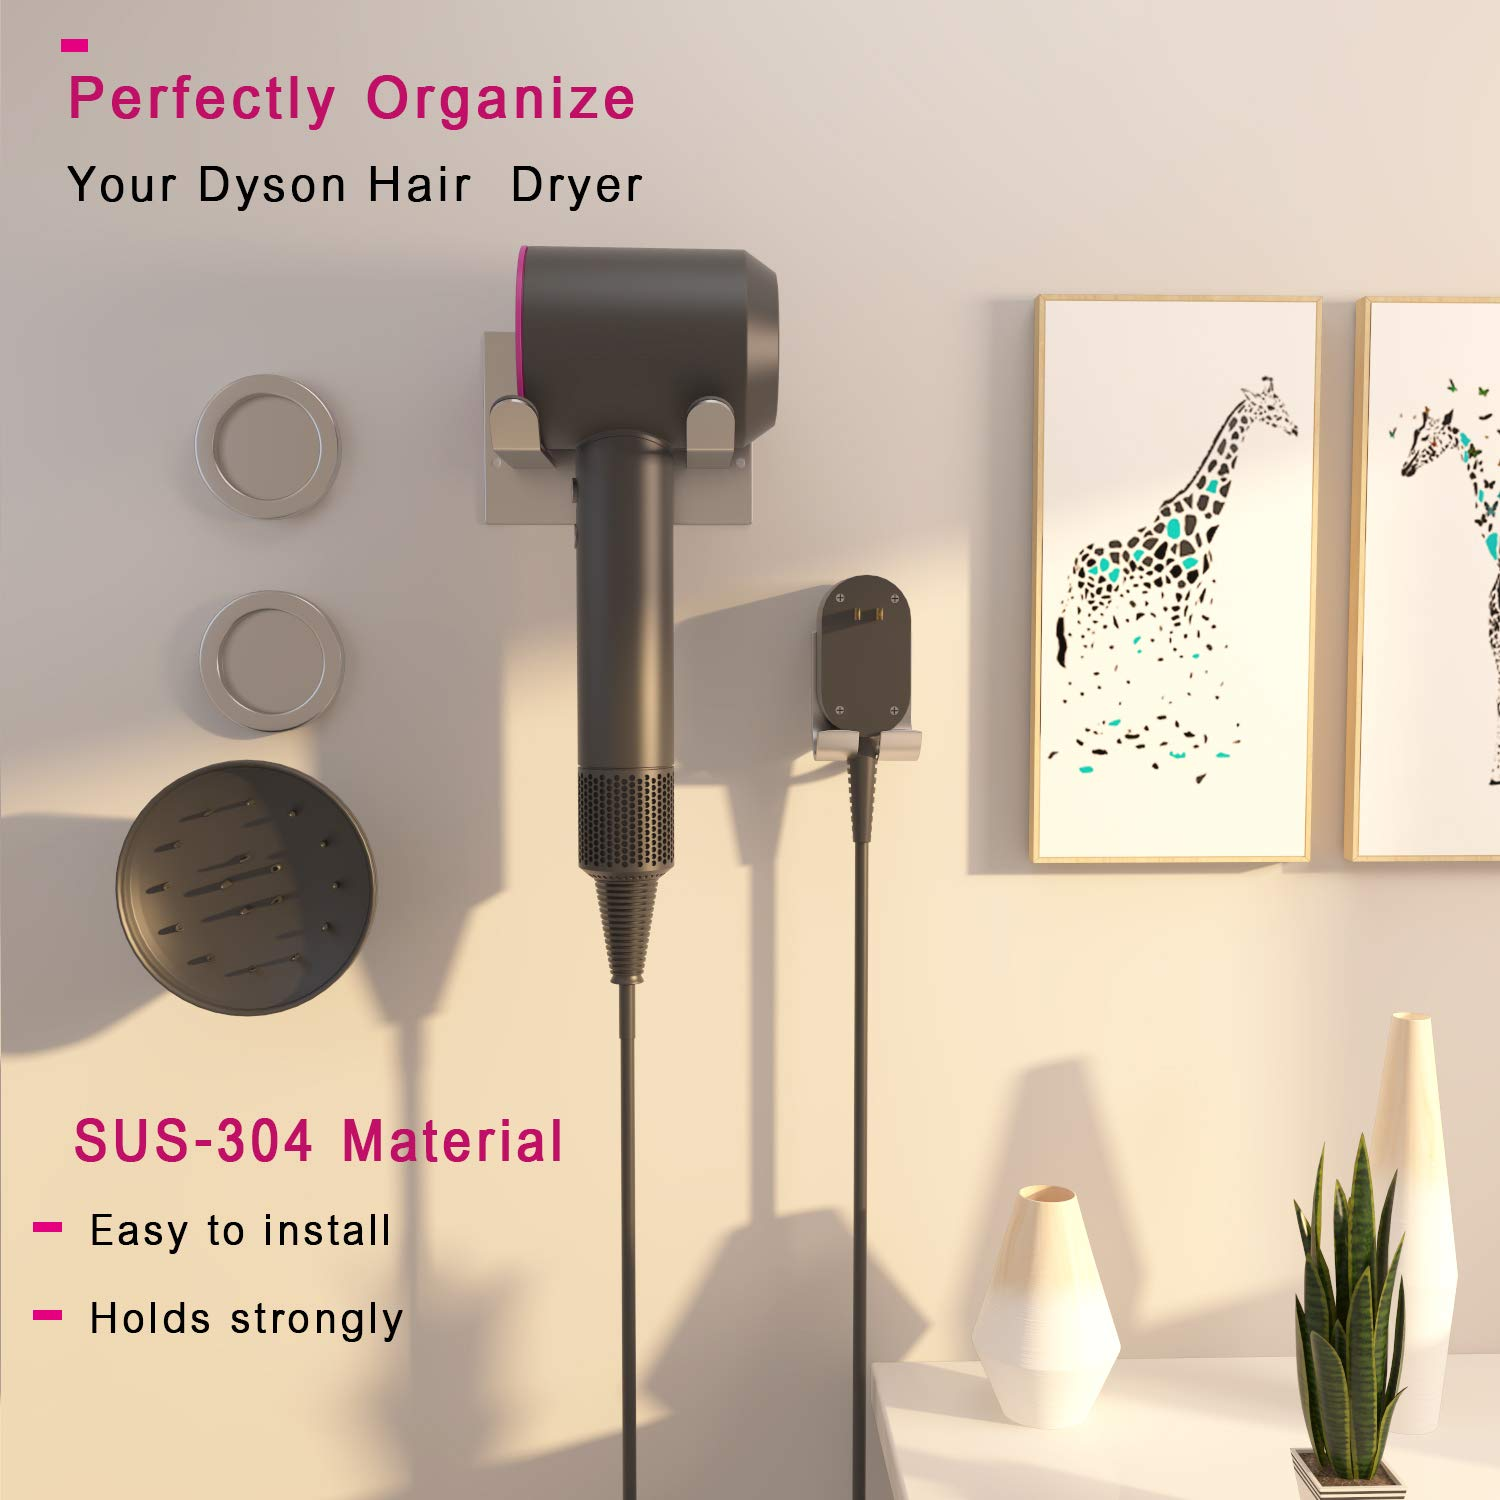 XIGOO Hair Dryer Holder, Self Adhesive Dyson Hair Dryer Wall Mount Holder Compatible Dyson Supersonic Hair Dryer, Brushed, 304 Stainless Steel, Power Plug, Diffuser and Nozzles Organizer by XIGOO (Image #4)